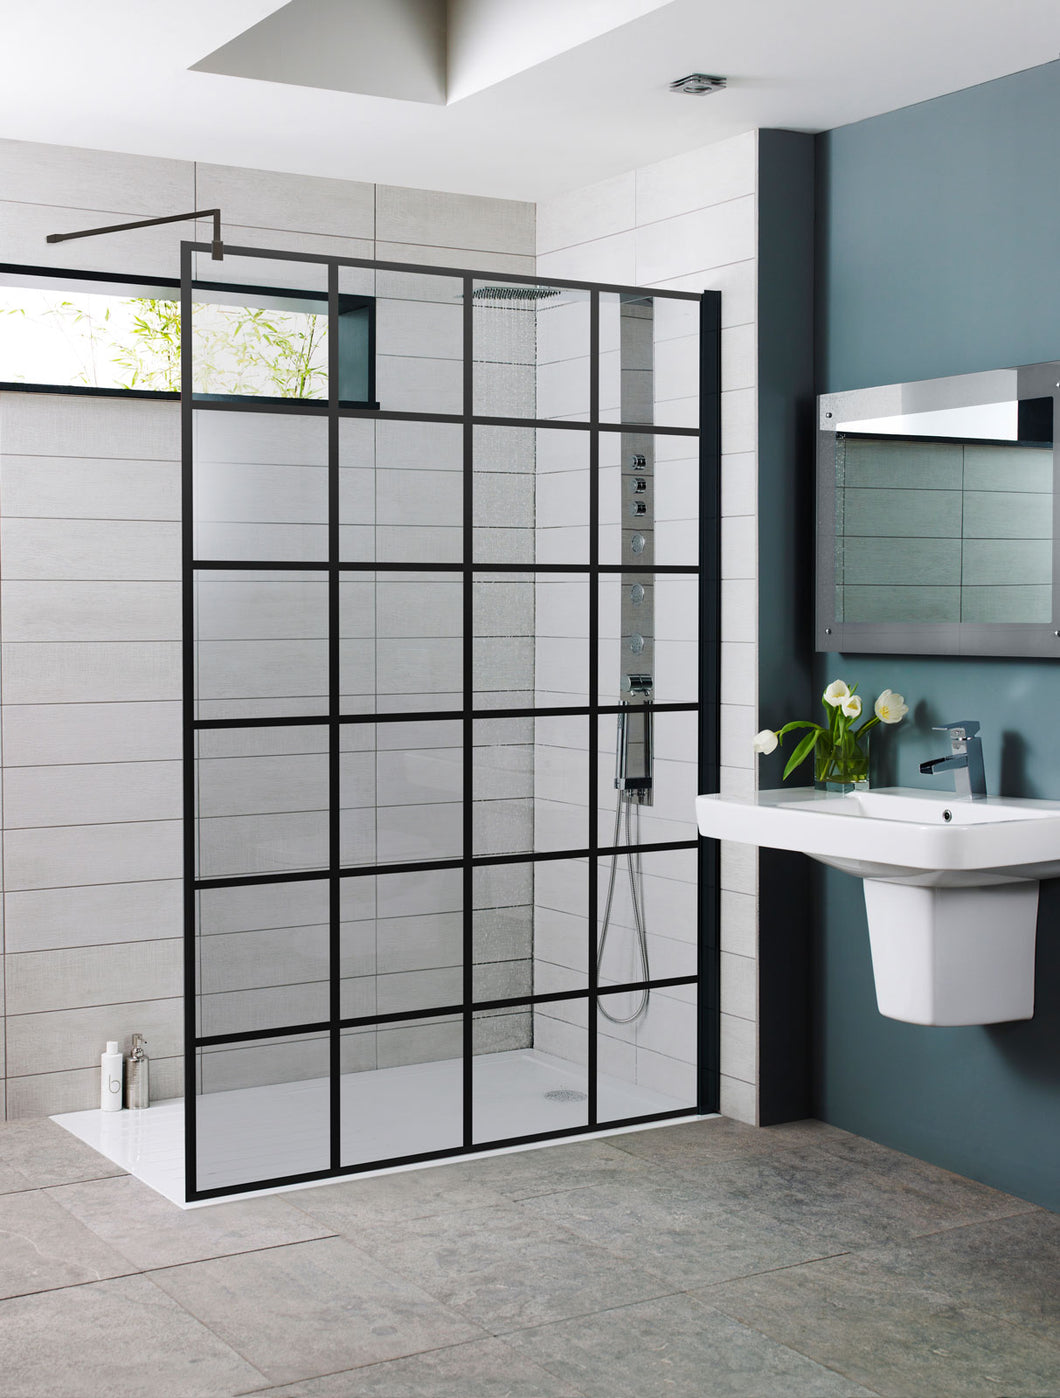 Black Grid Shower Screen Wetroom Critall Inspired 700 - 800 - 900 - 1000 - 1200 - Bathroom Trend